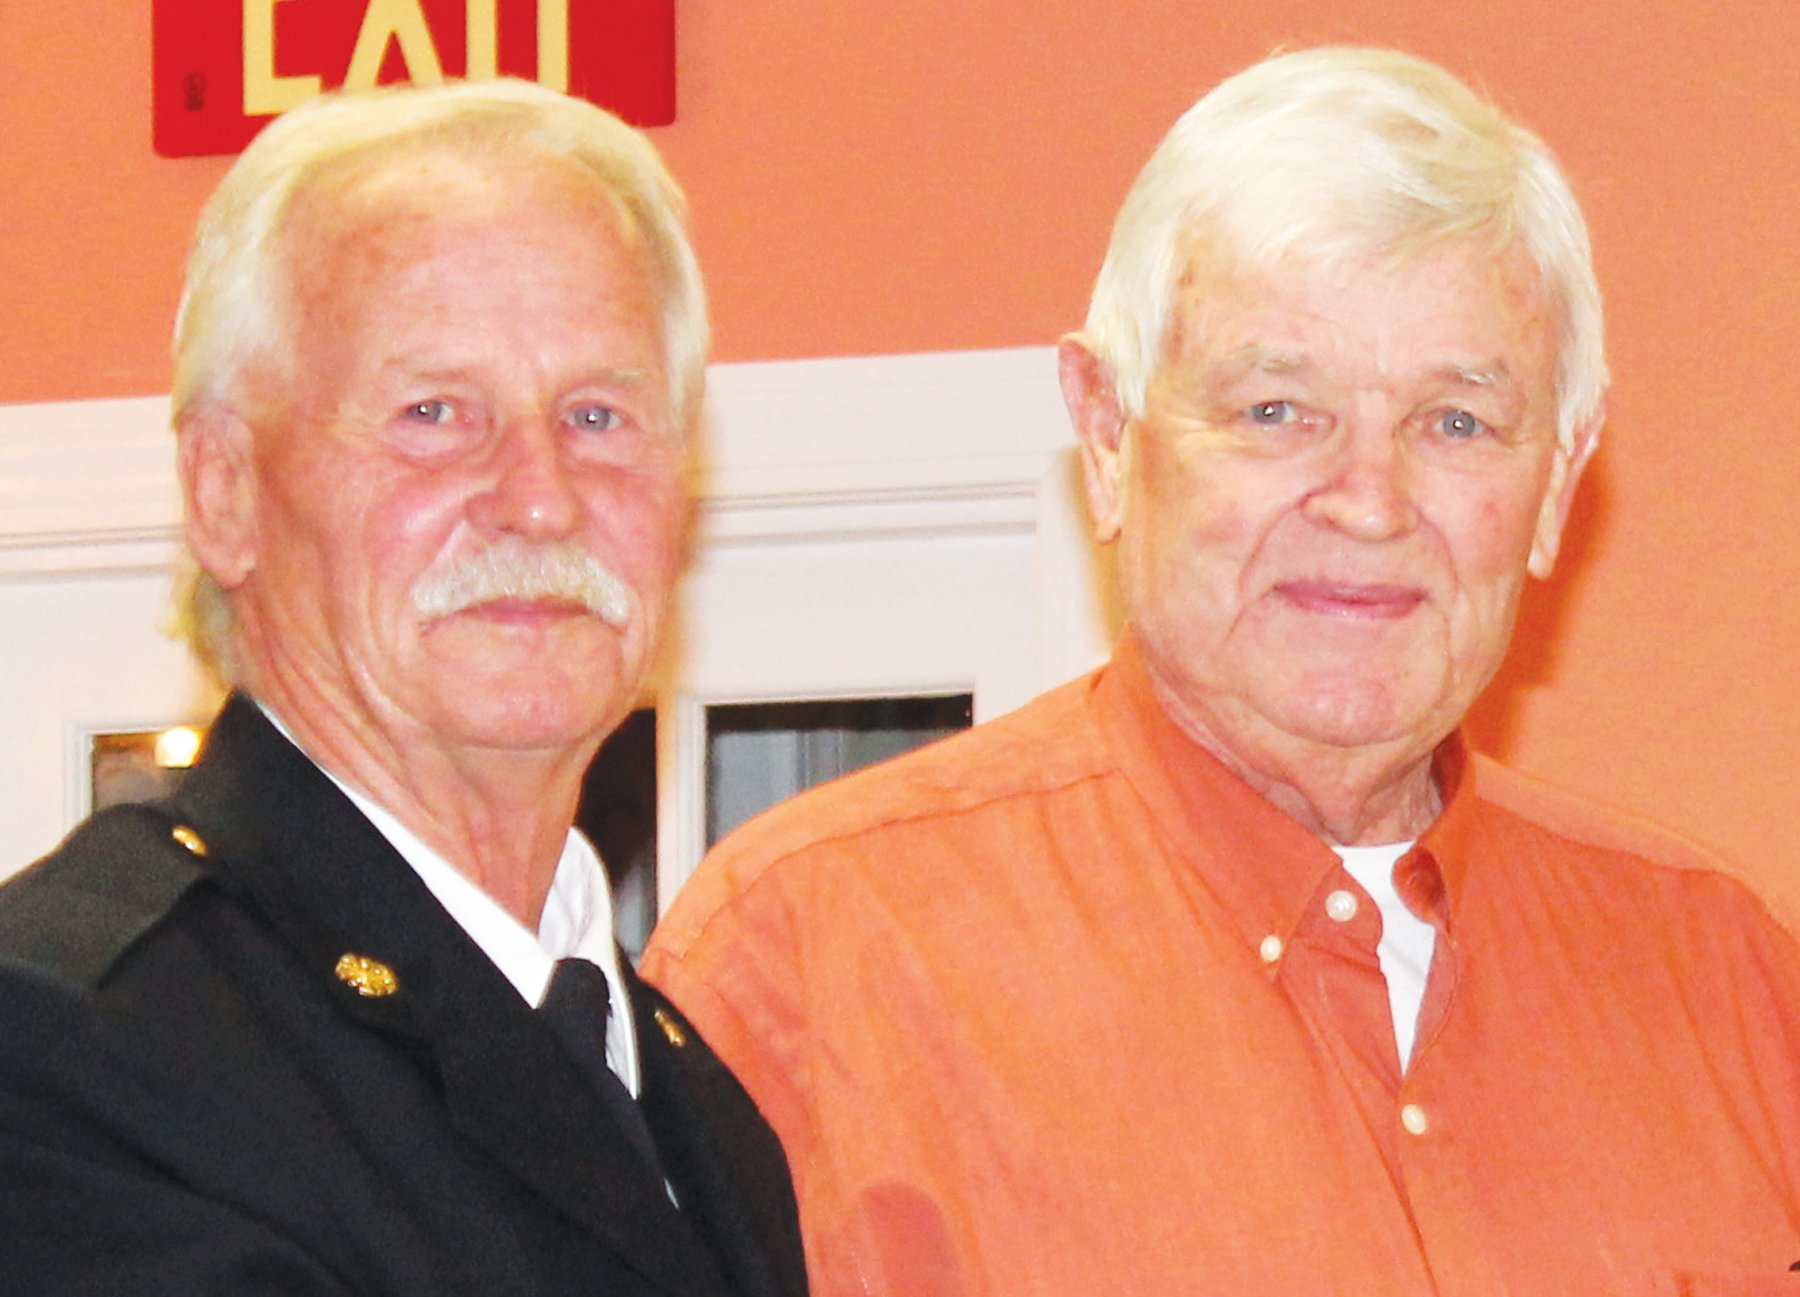 Firefighter Larry Williamson with the Manning Fire Department received recognition as the volunteer who responds to the most calls or training sessions during the past year. Manning Fire Chief Mitch McElveen named Williamson as the department's Top Dog Award winner.